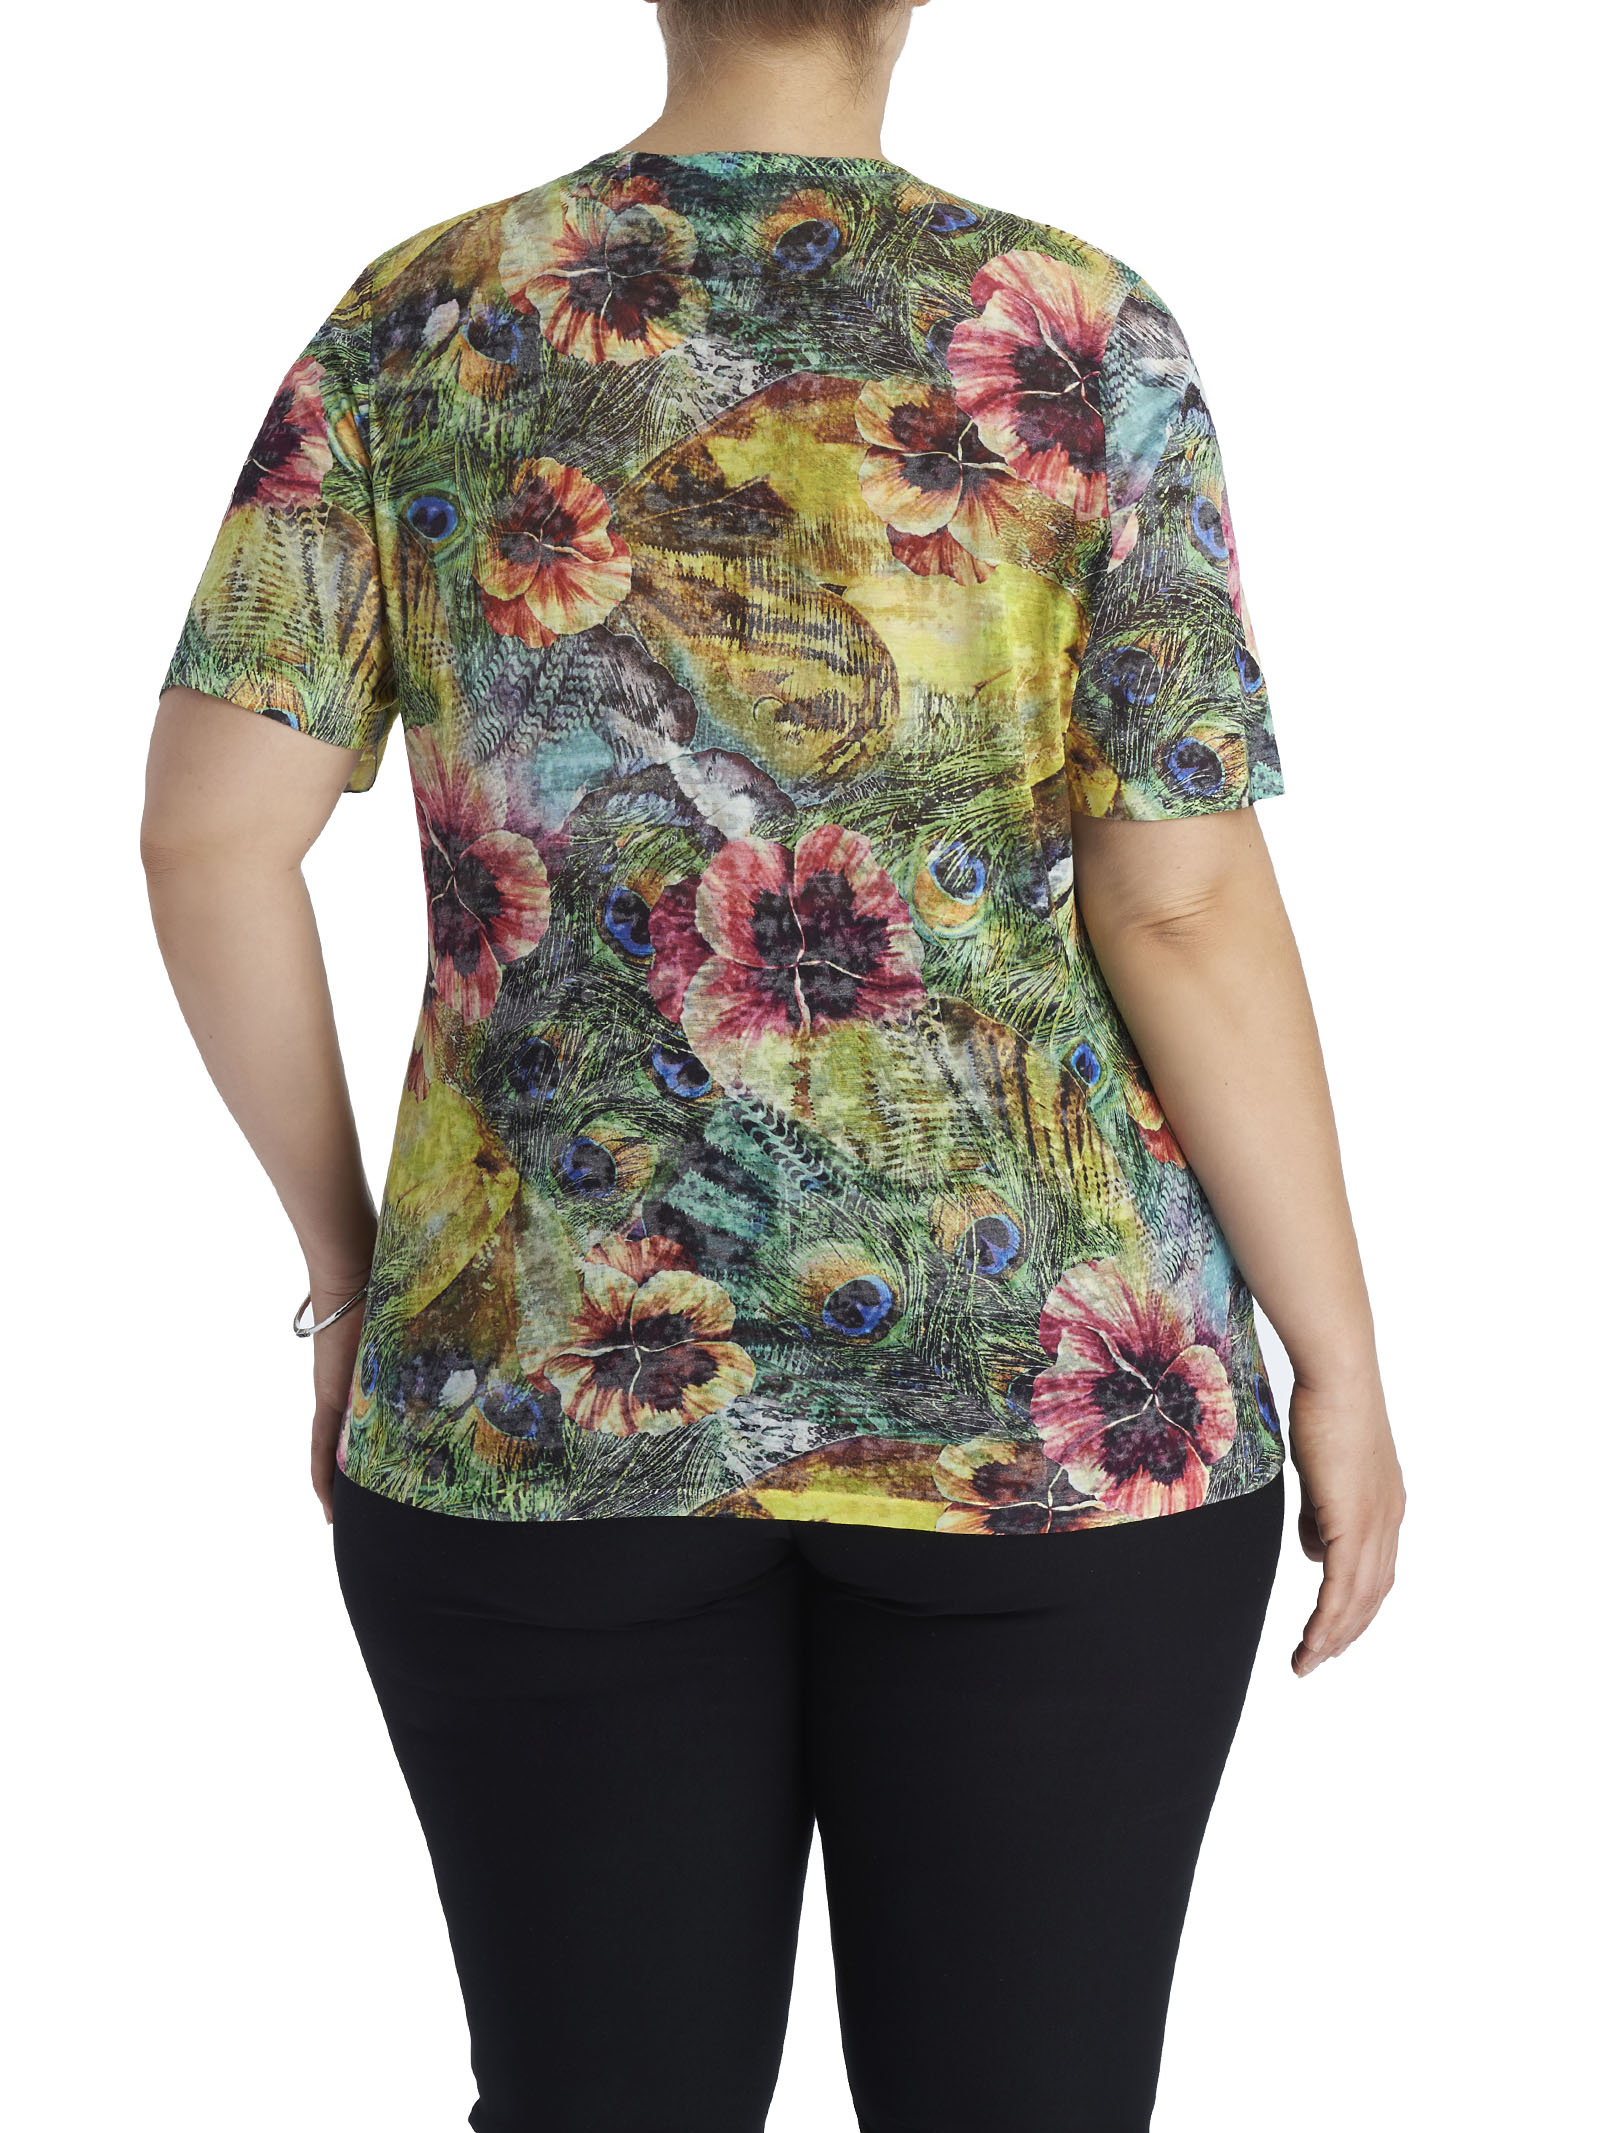 Sequined Tropical Print T-Shirt, Yellow, hi-res